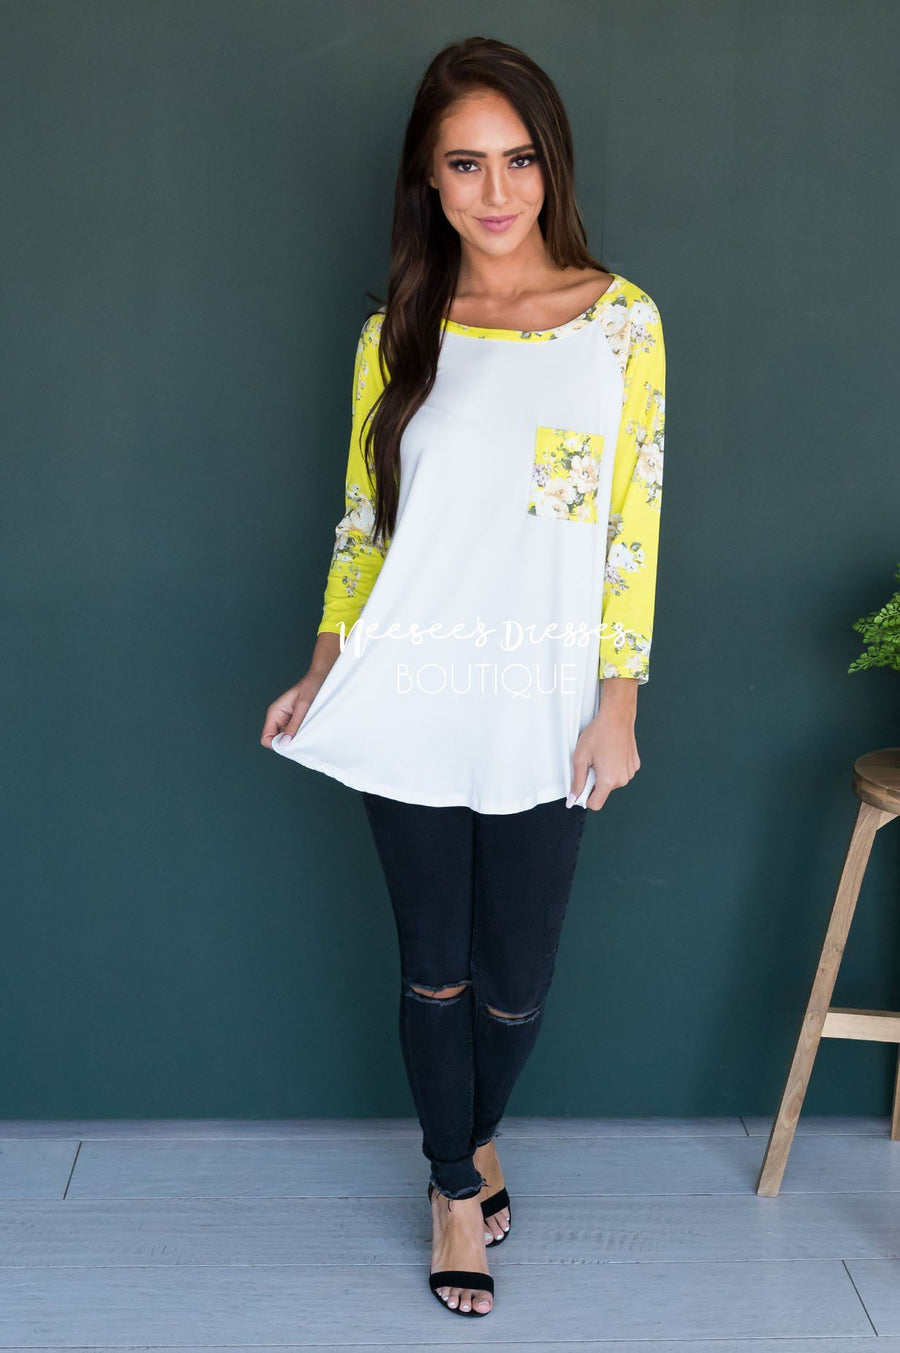 Back Again Modest Baseball Tee Modest Dresses vendor-unknown